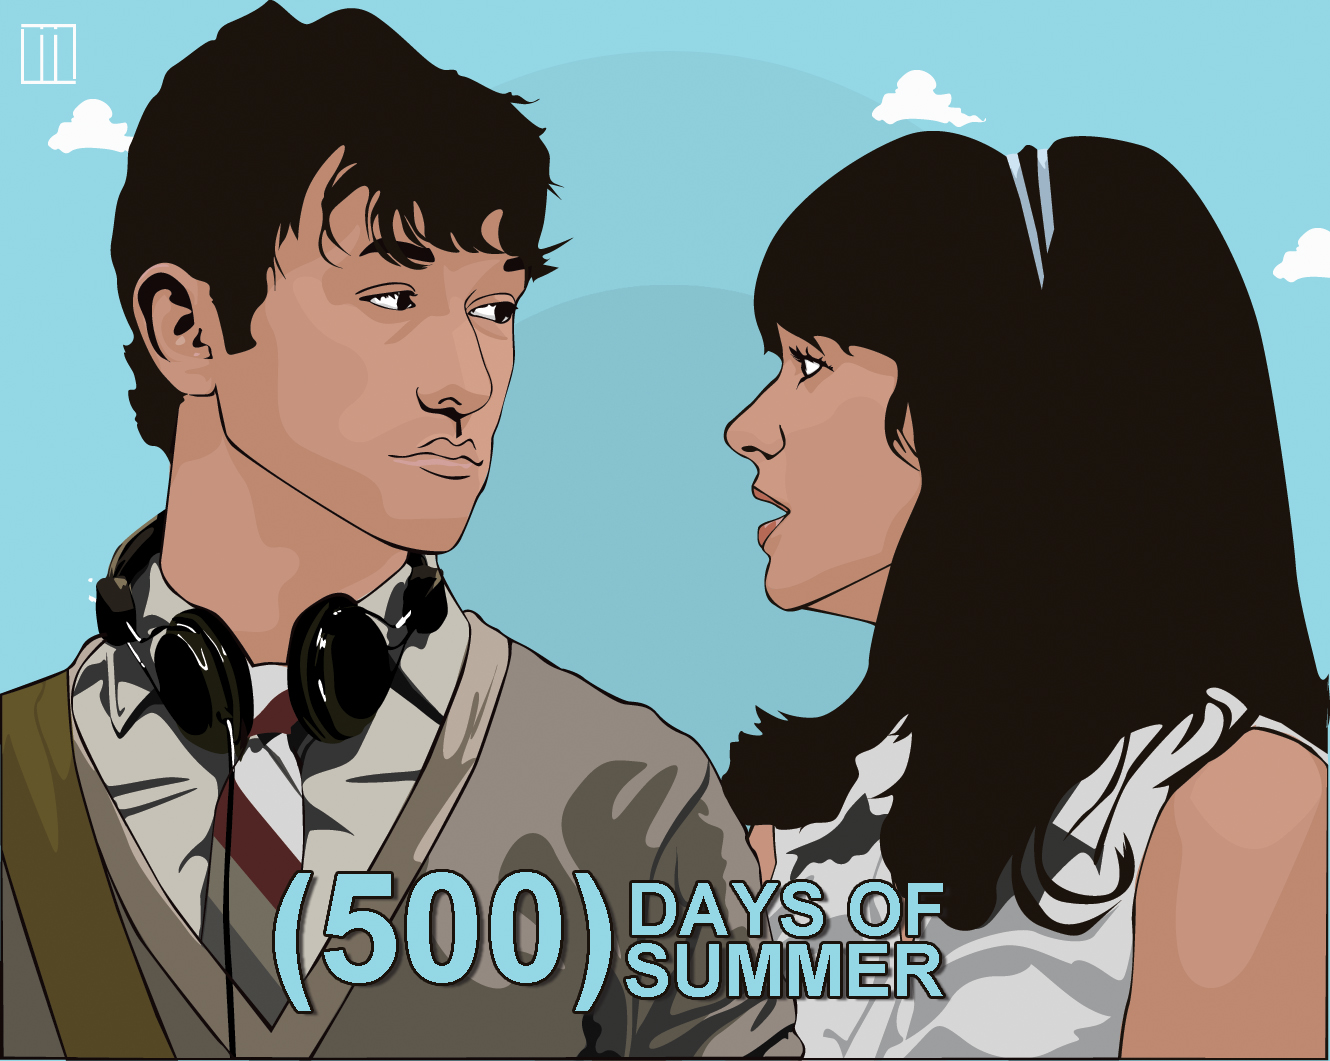 http://4.bp.blogspot.com/-Wd1G2lHMsXw/TscHyKHKSYI/AAAAAAAAA58/5HaPi1ehL-w/s1600/500-days-of-summer-wallpaper-6-704507.jpg